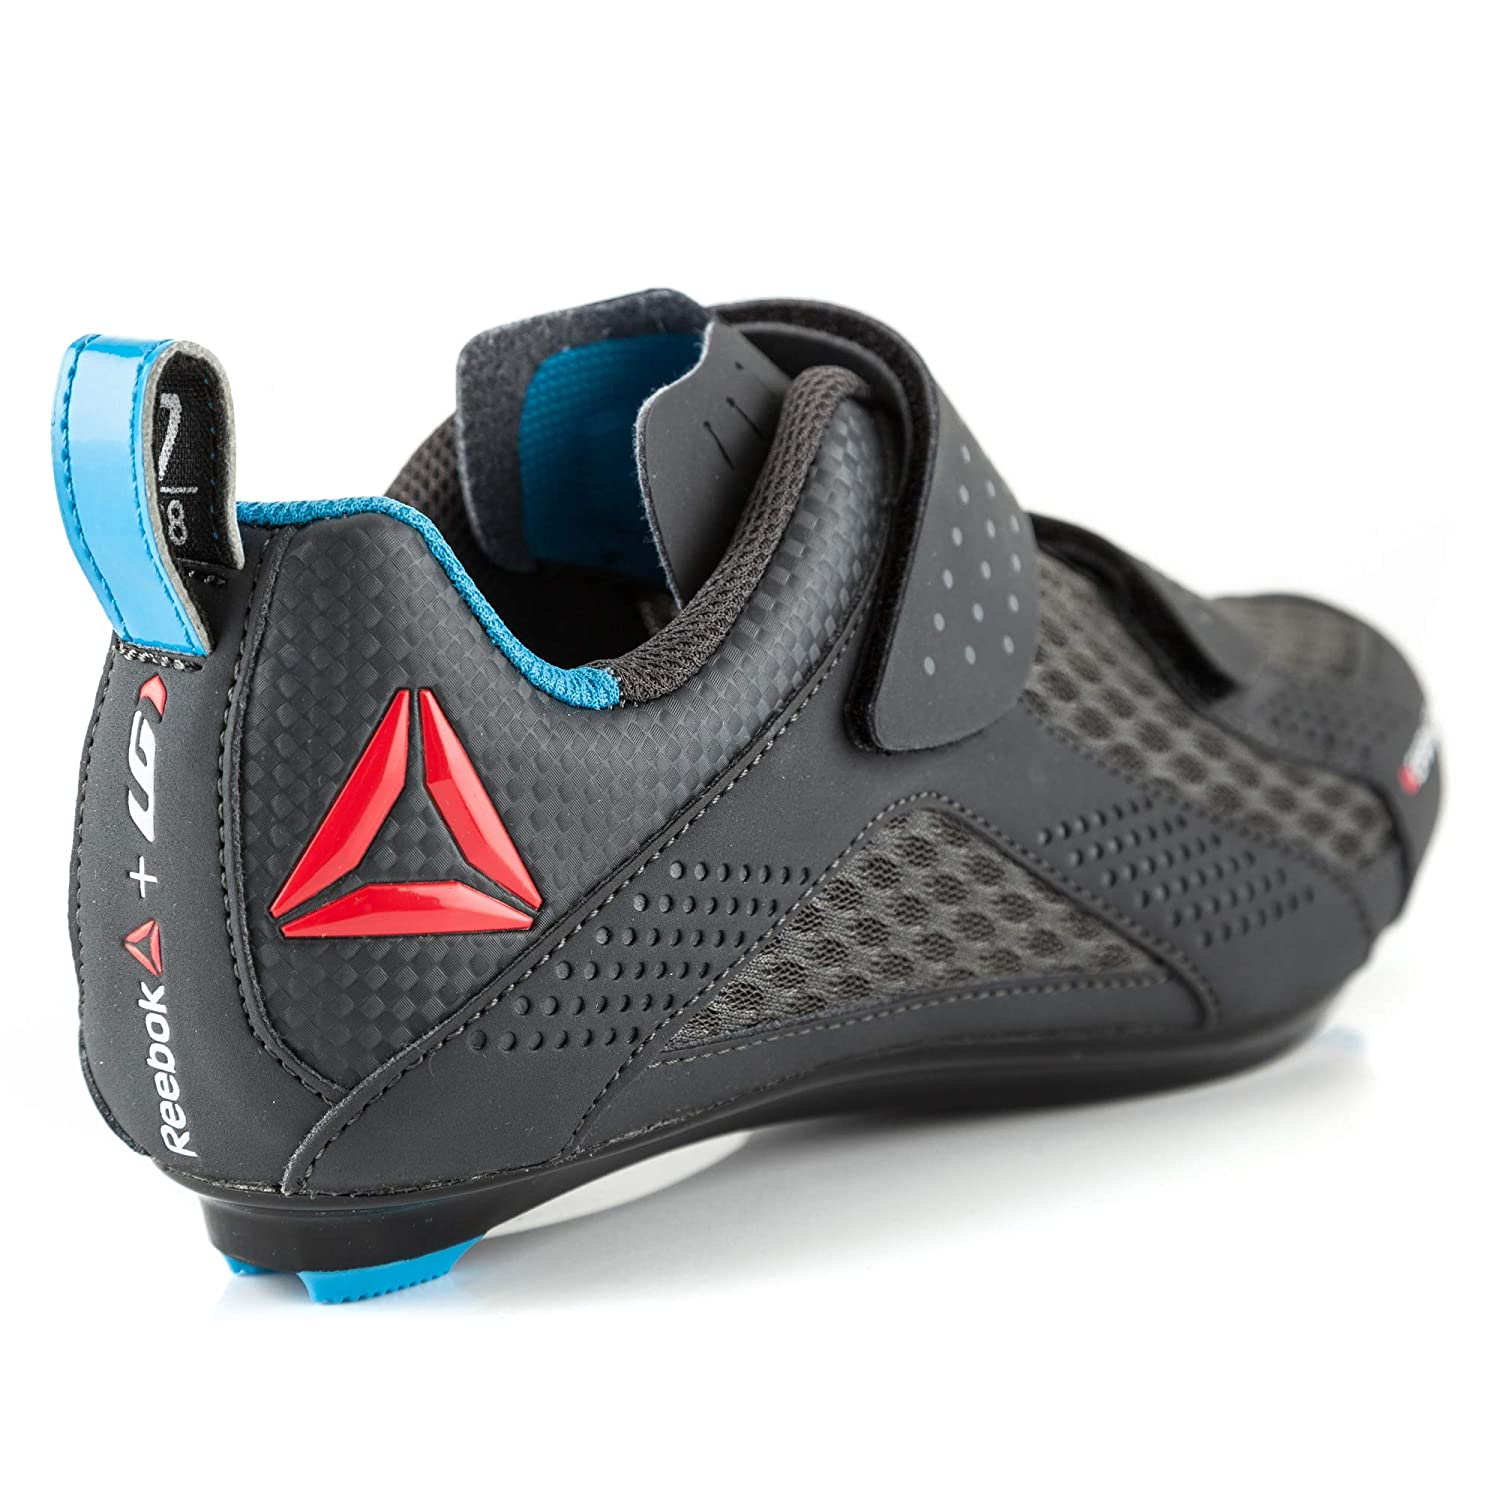 9d3846d88279ac Amazon.com  Louis Garneau Women s Actifly Indoor Cycling Shoes